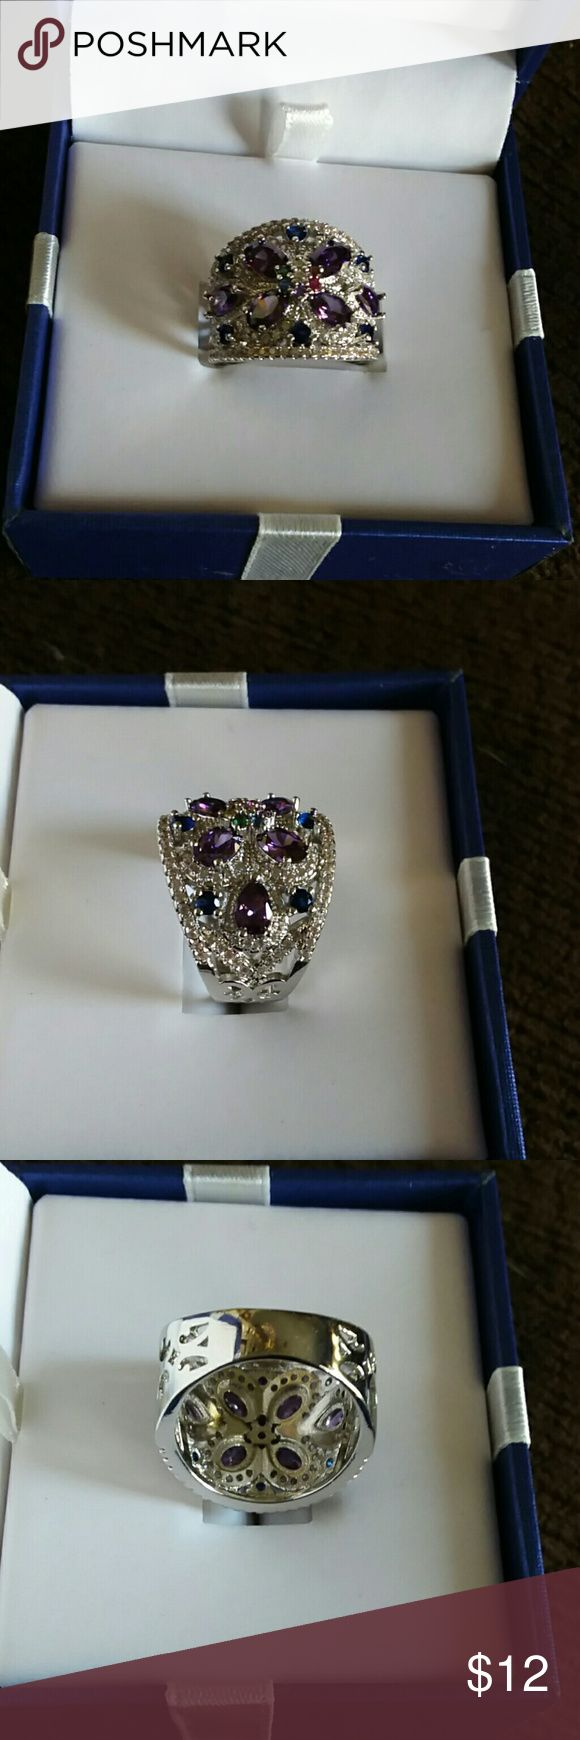 NEW HIGH QUALITY COSTUME JEWELRY RING NEW HIGH QUALITY COSTUME JEWELRY RING  KNUCKLE TO KNUCKLE FIT  PURPLE STONES WITH FLORAL DESIGN  VERY PRETTY RING Jewelry Rings